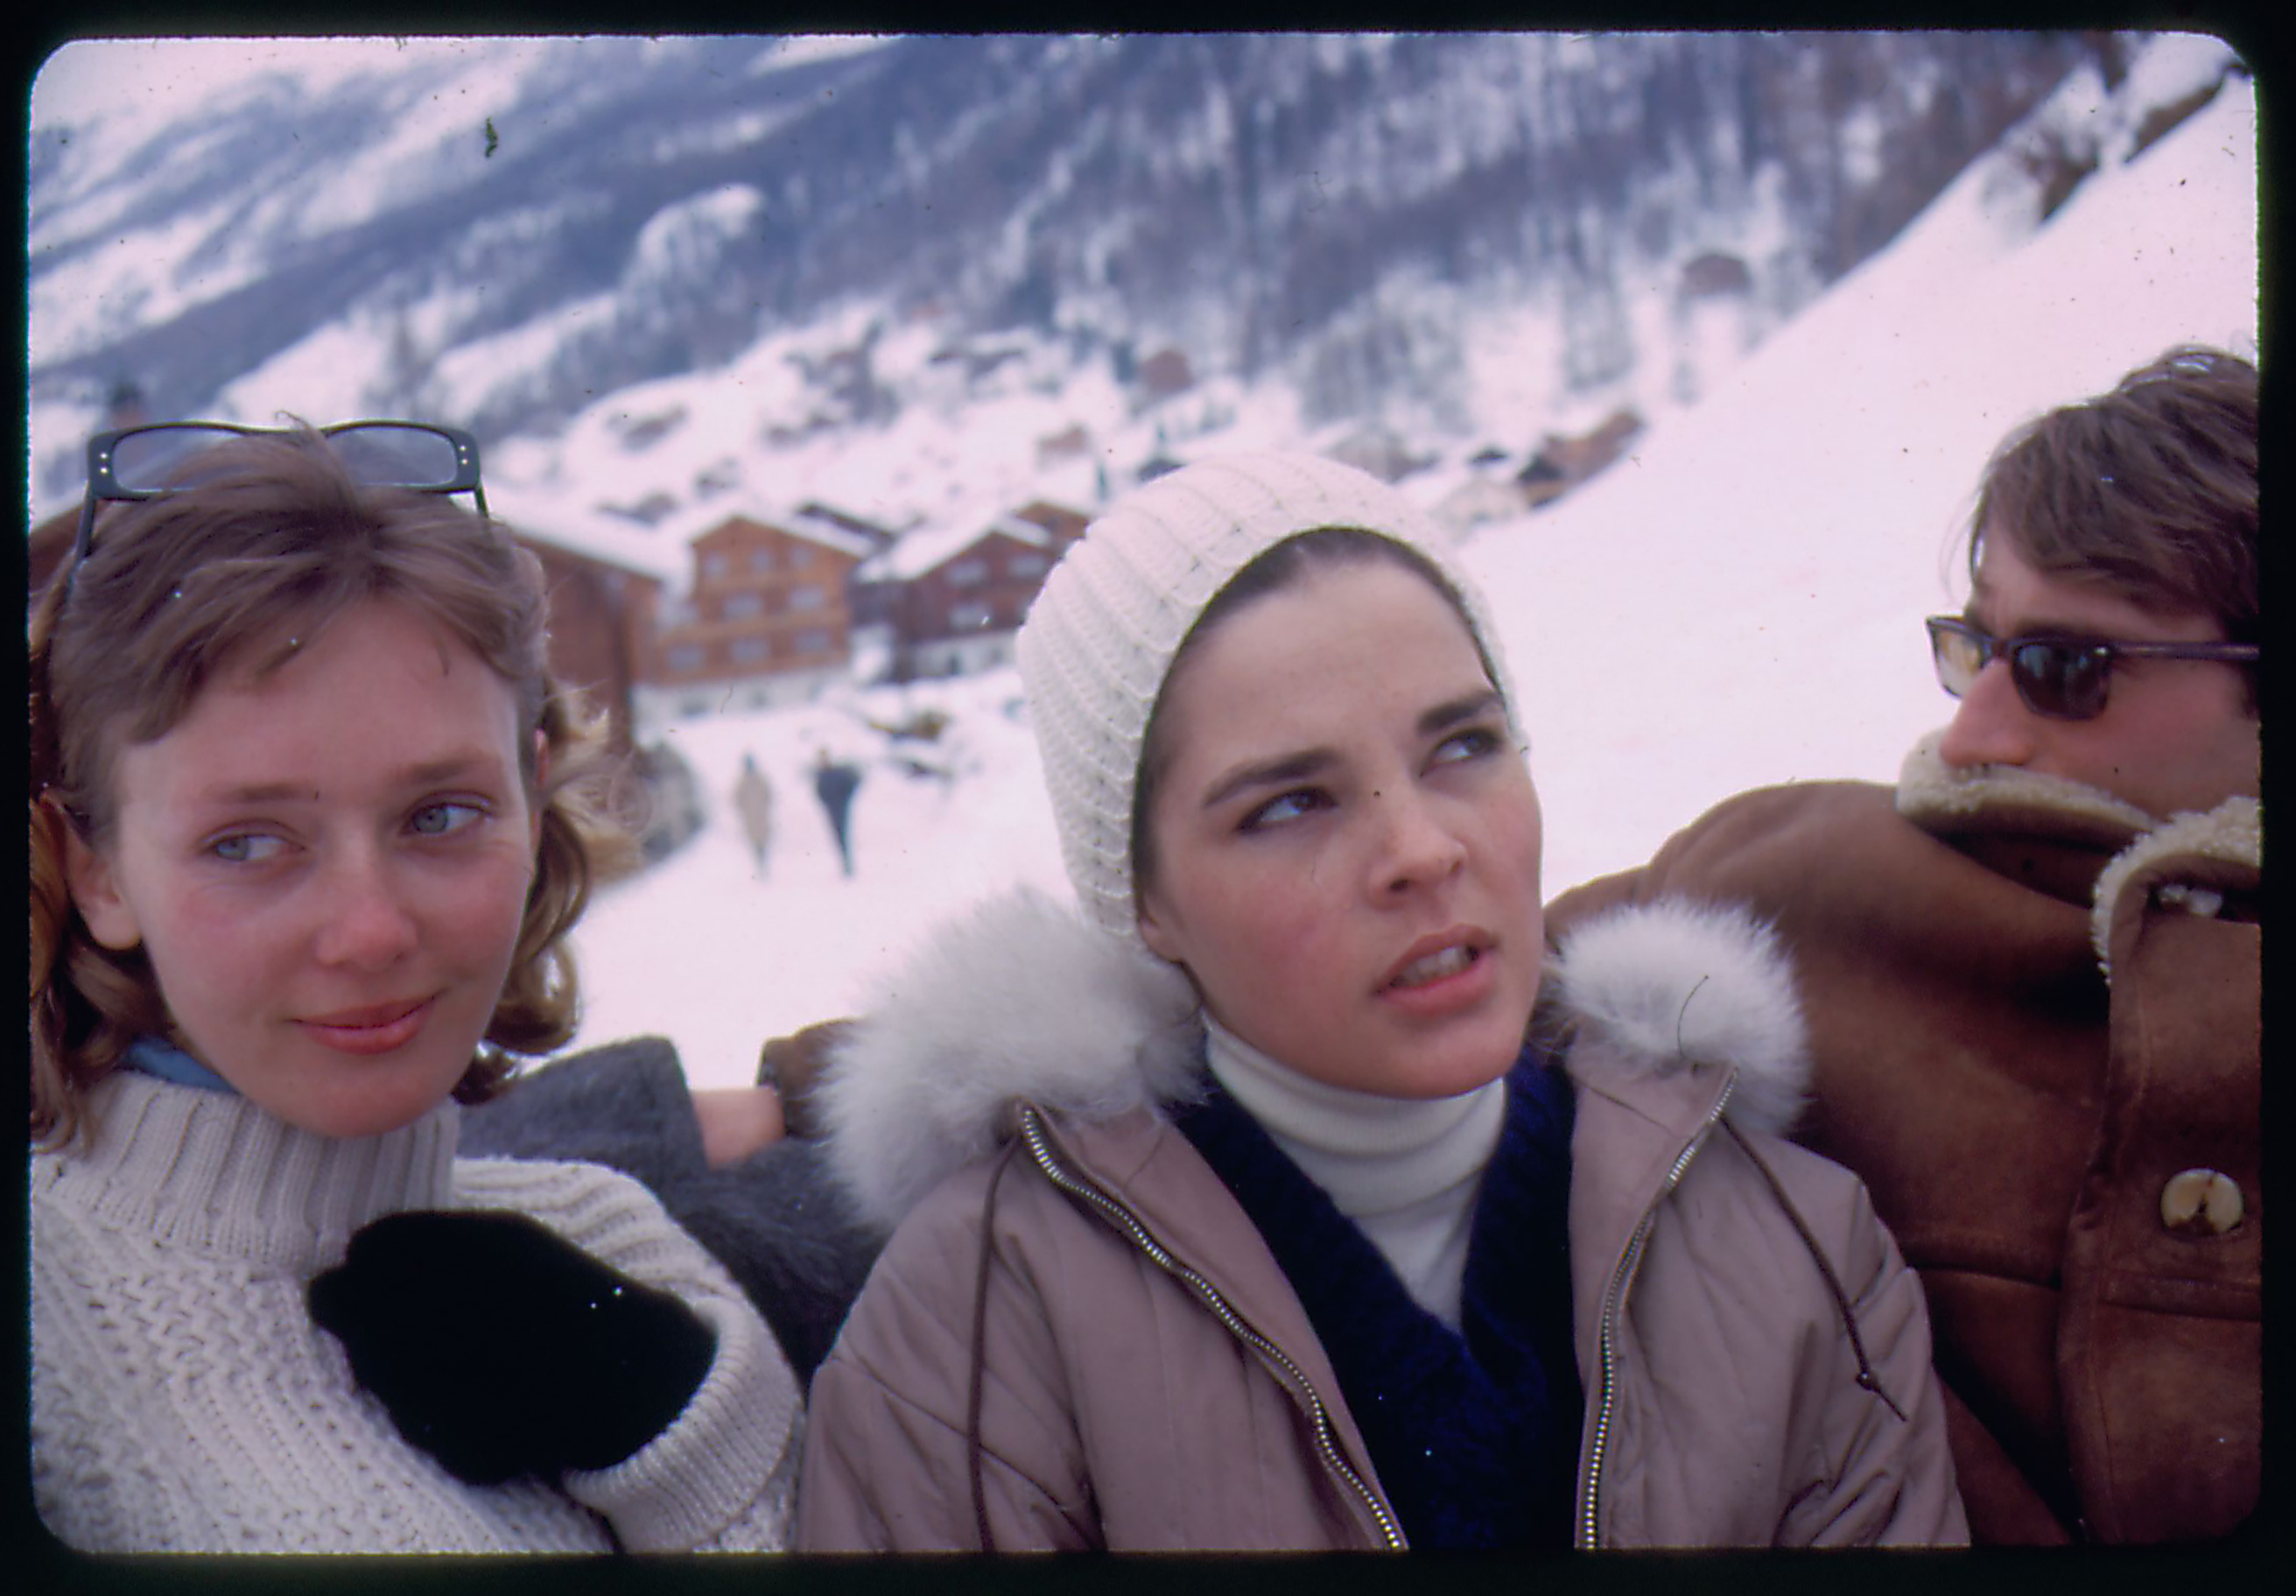 Candid color portrait of two women (one of them Ali MacGraw) and a man with a ski chalet in the background.